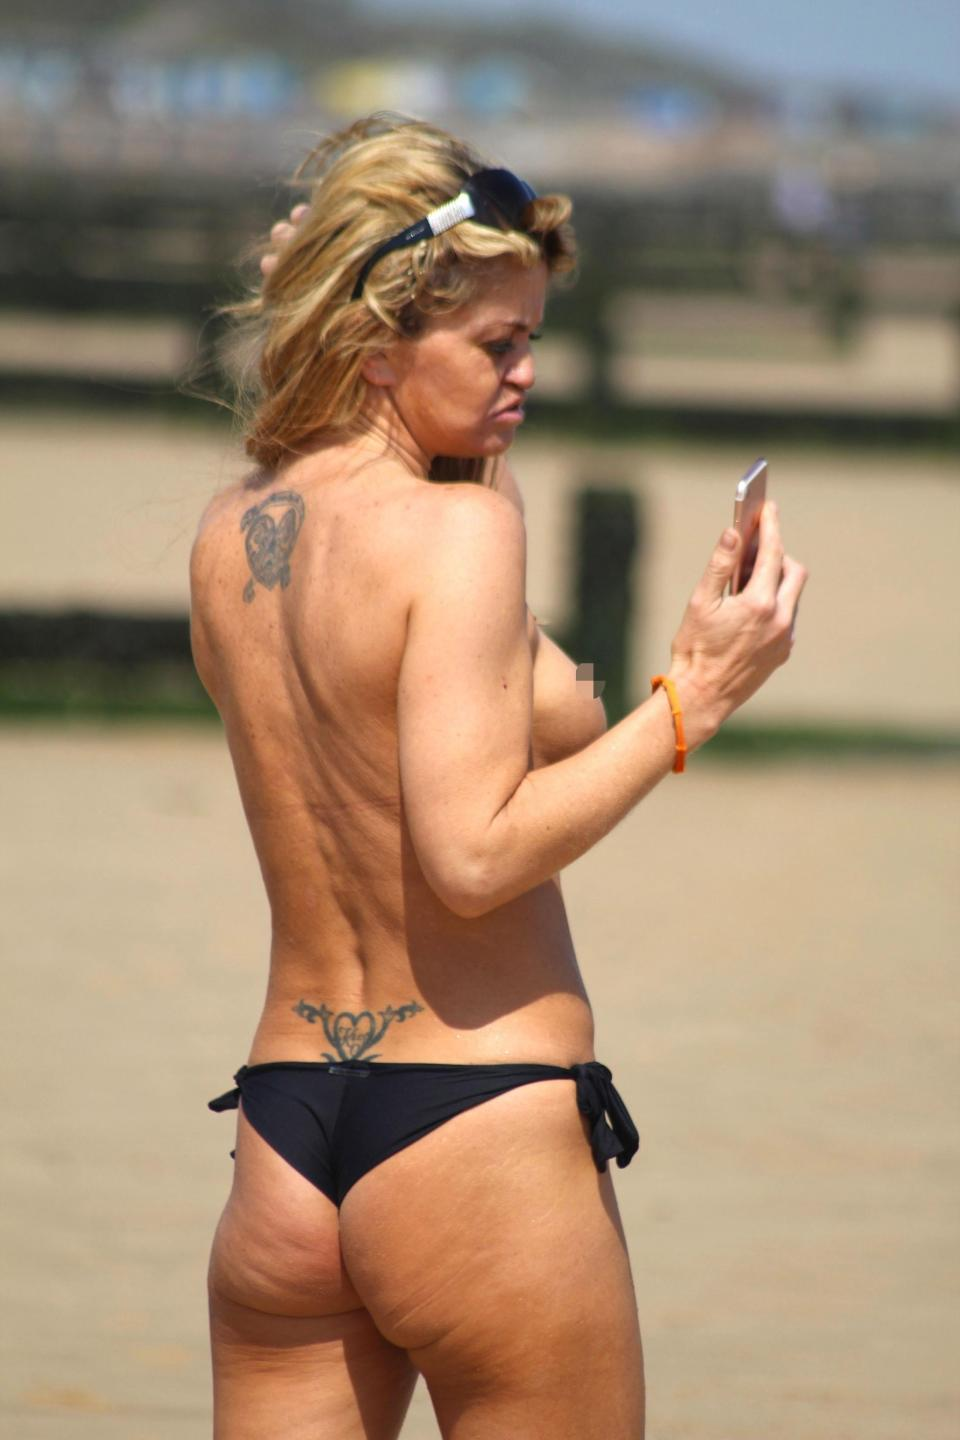 Danniella Westbrook Topless Photos southcolors 7